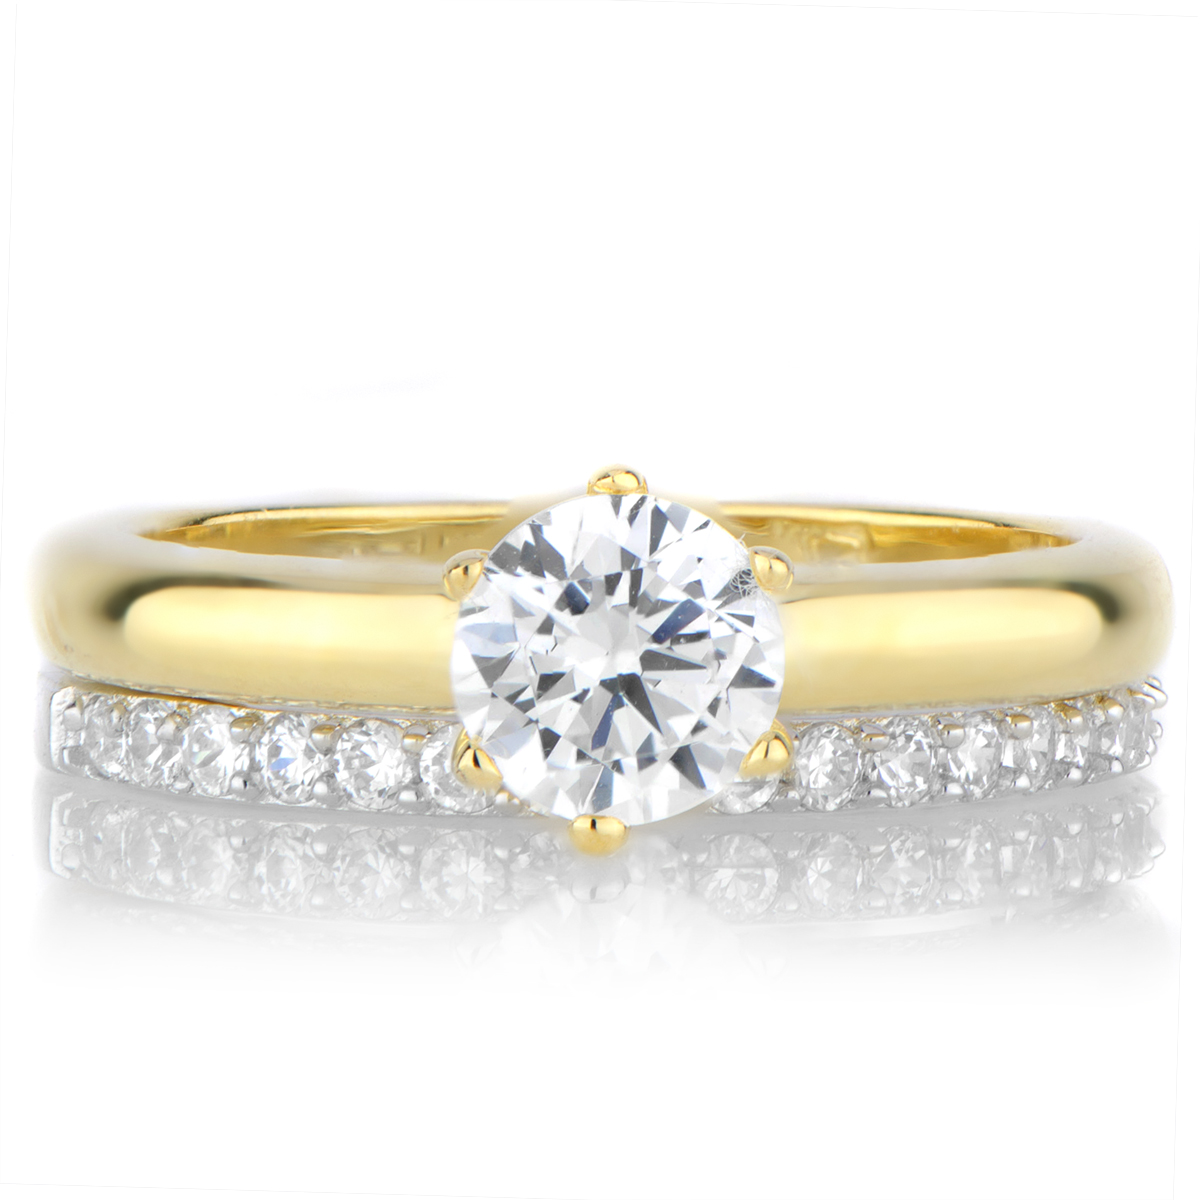 Two tone wedding ring sets inexpensive navokalcom for Two toned wedding ring sets